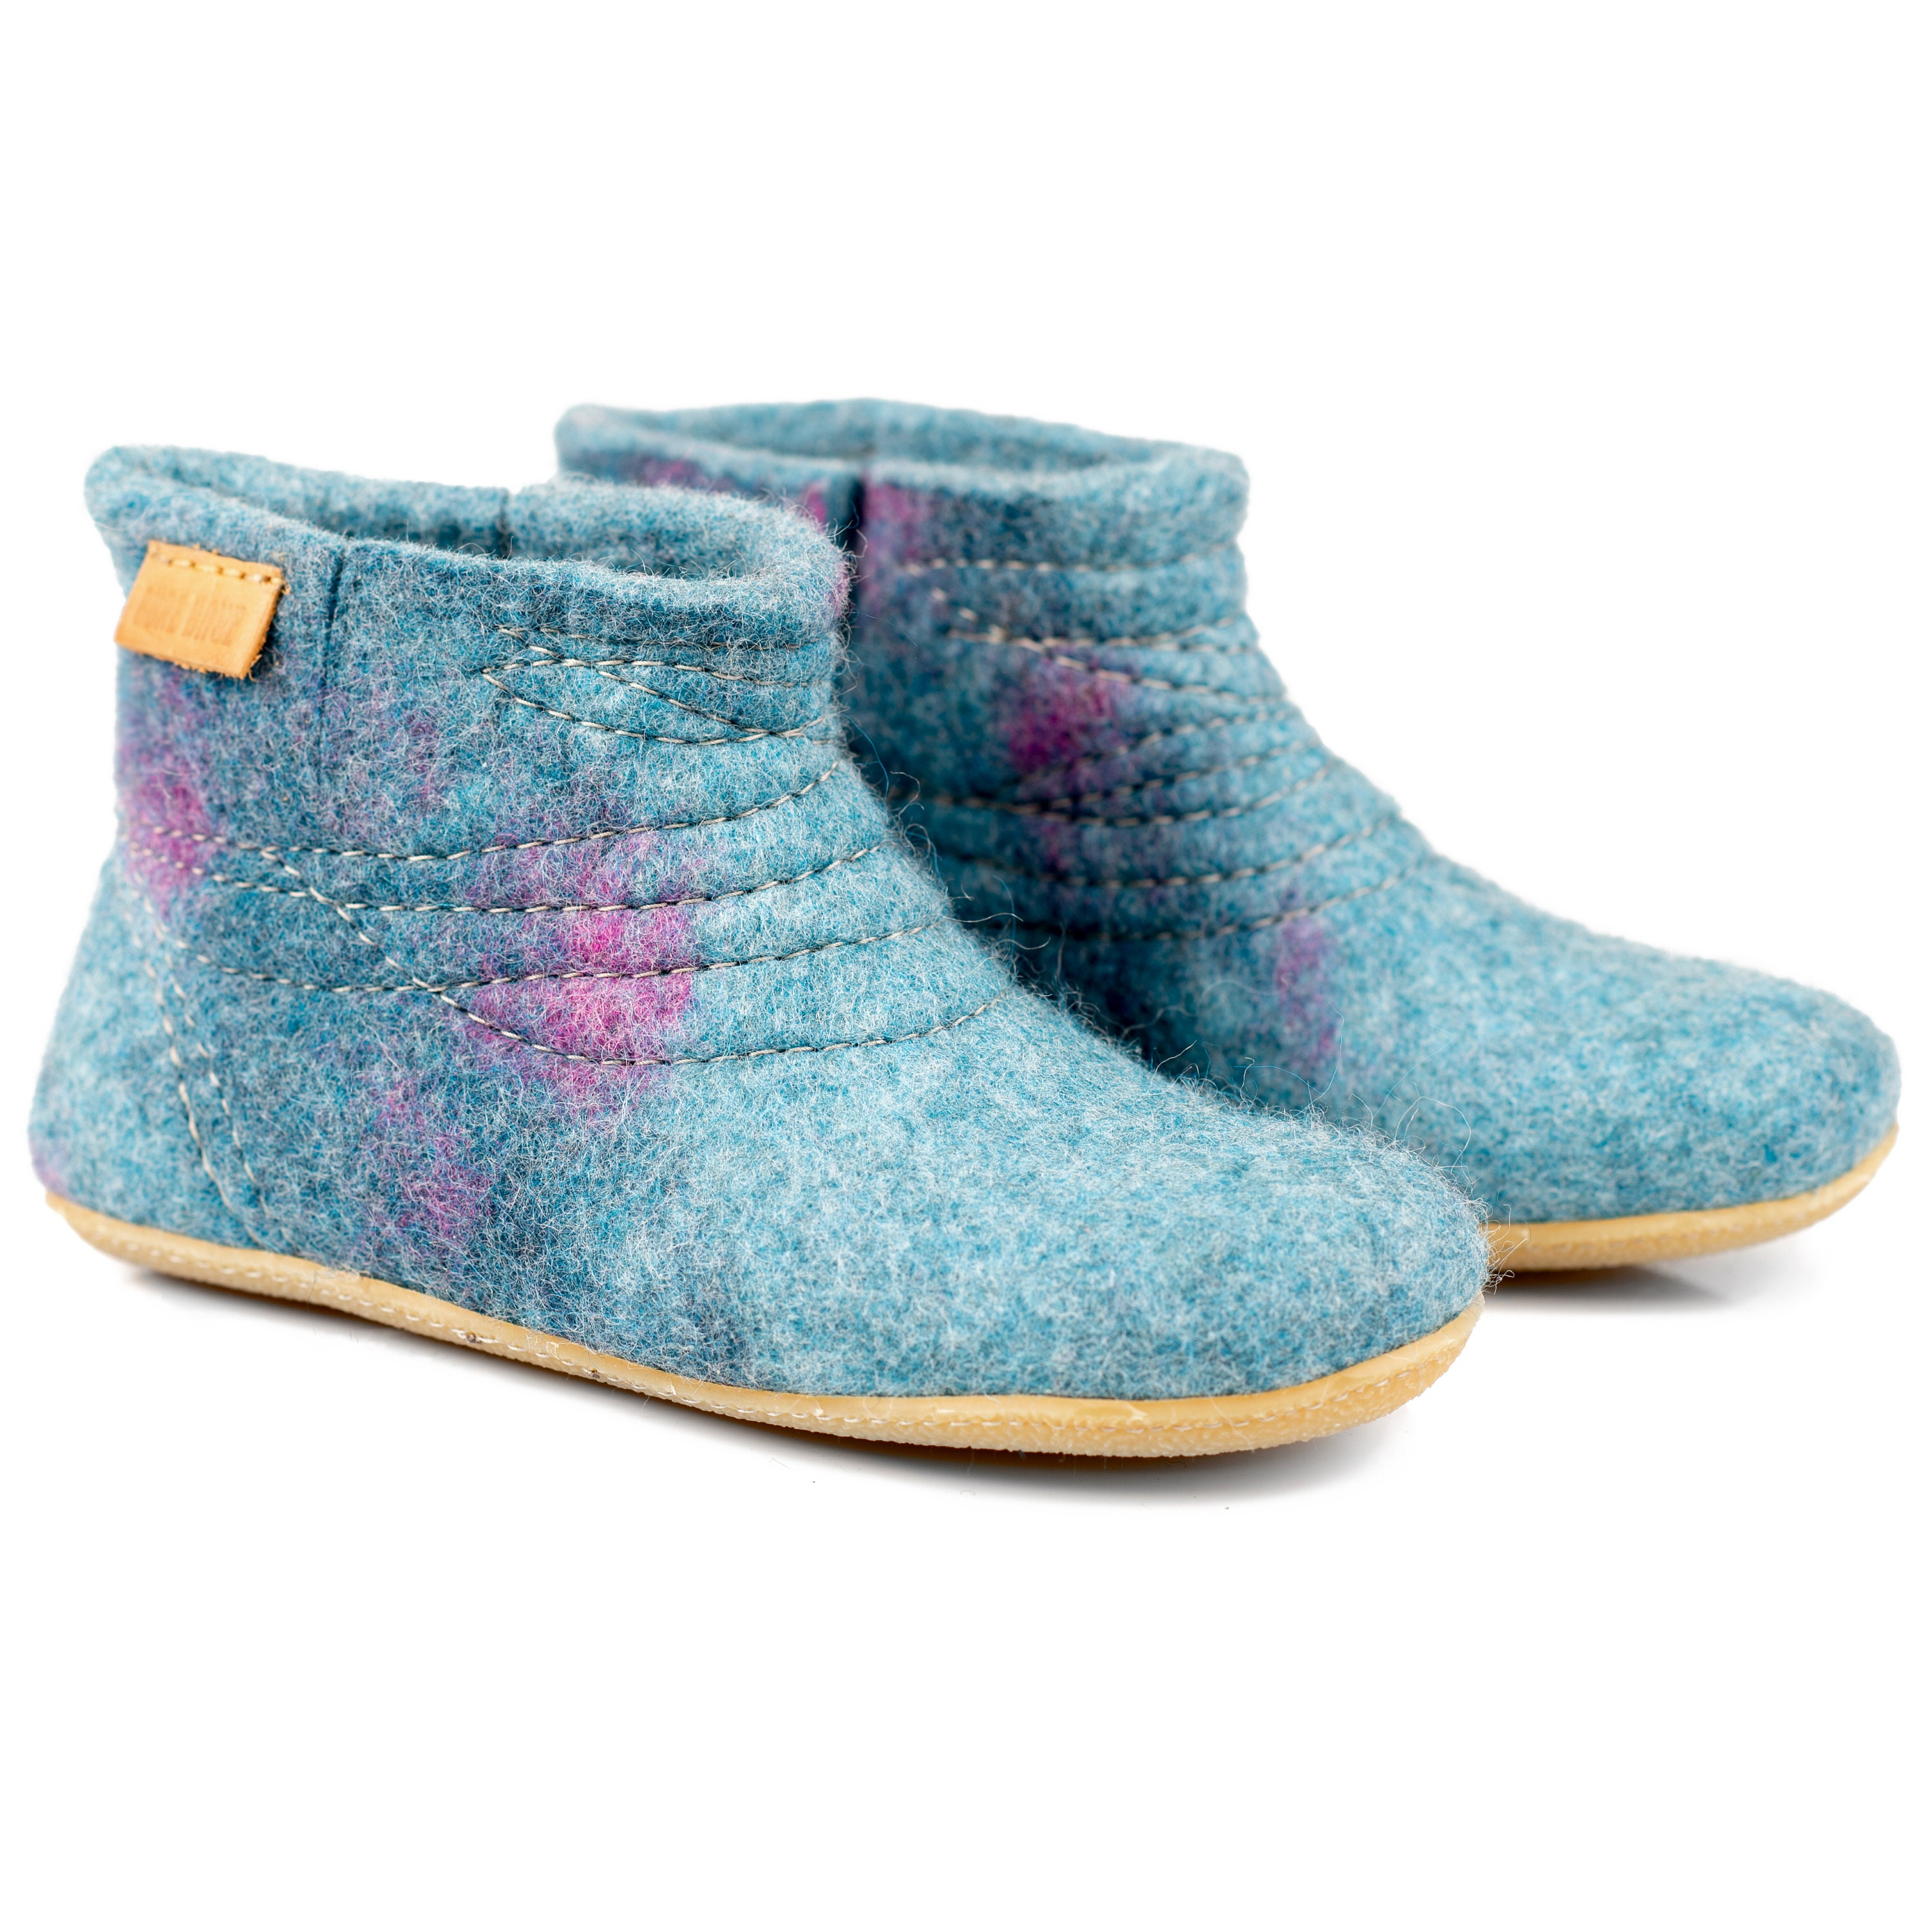 d9886f881b0ef WOOBOOT women's ankle felted wool mid booties slippers with sturdy ...